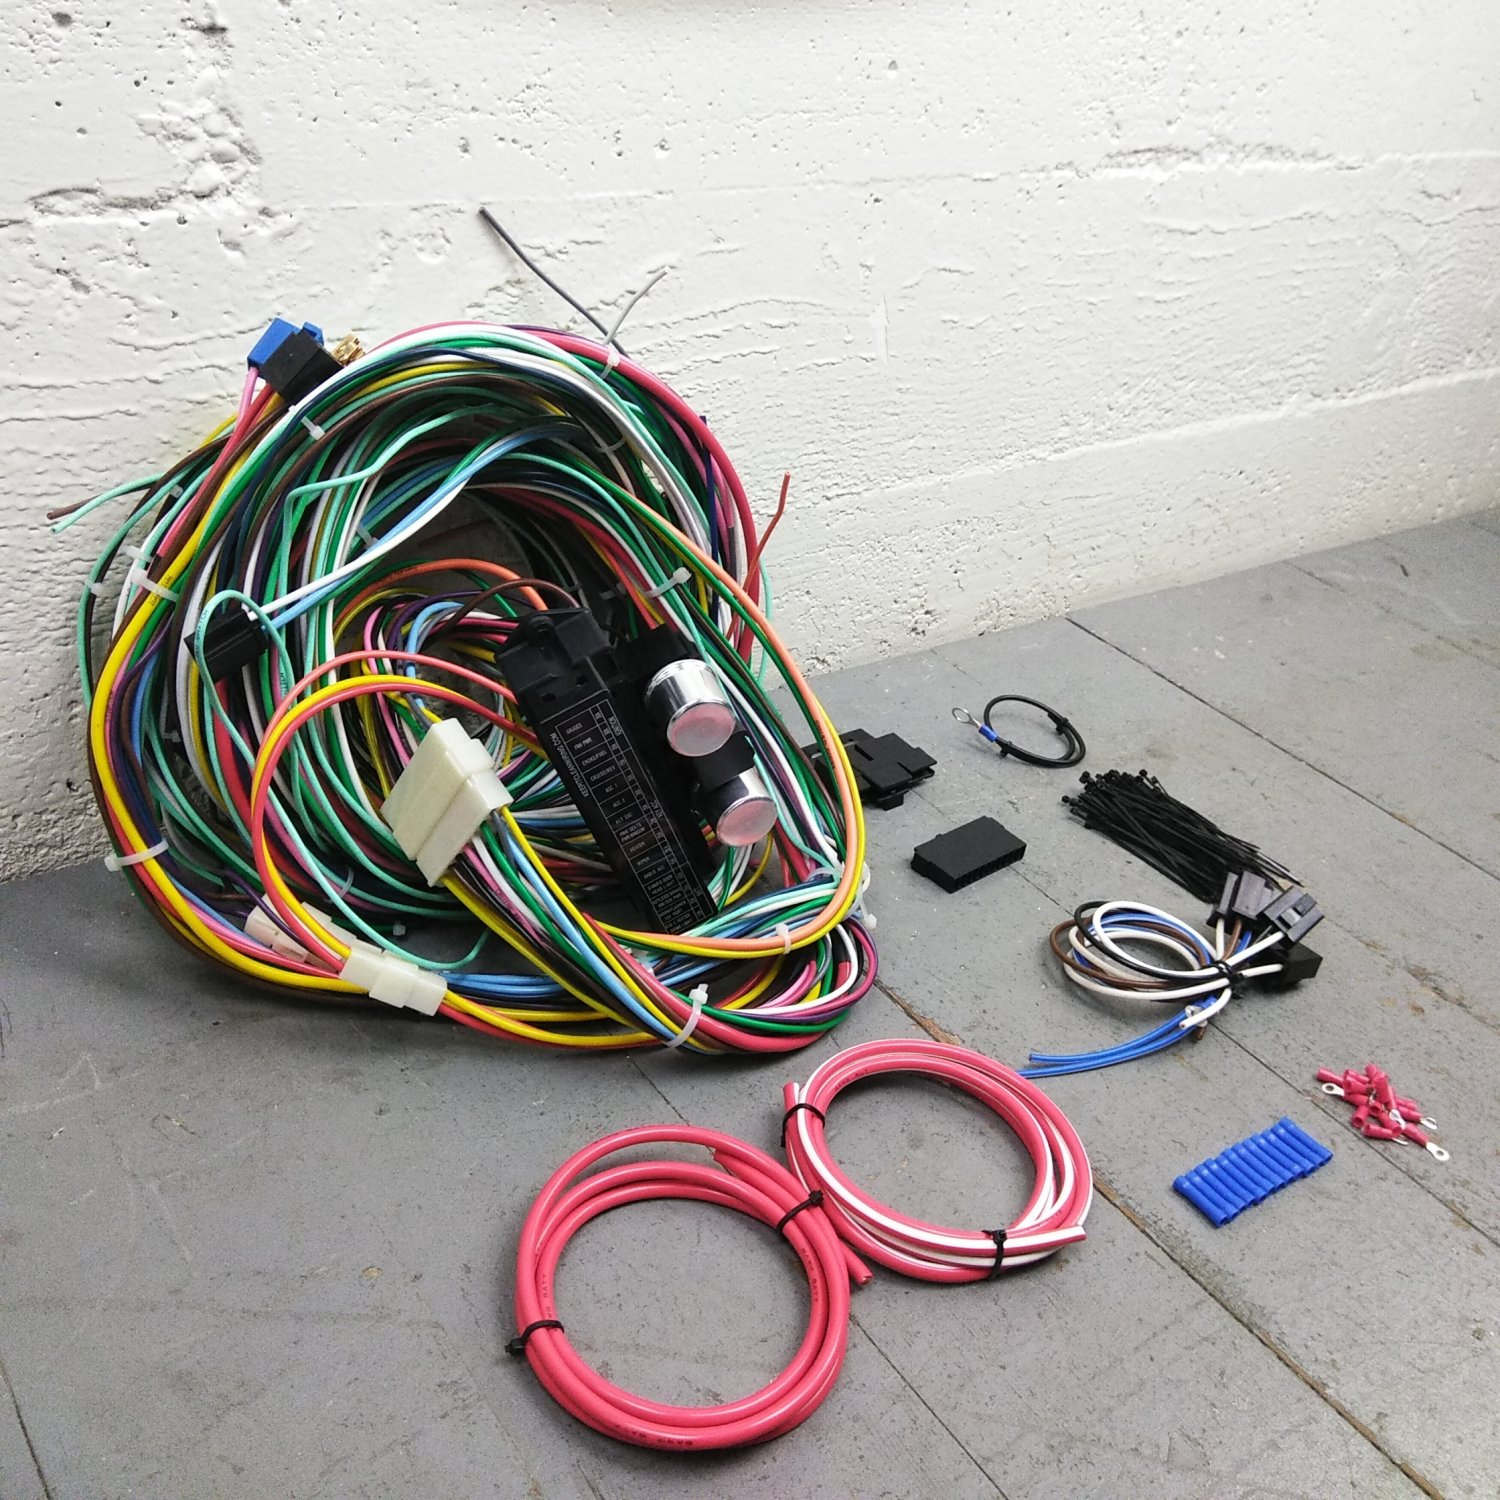 hight resolution of 1961 1972 lincoln wire harness upgrade kit fits painless fuse block complete bar product description c